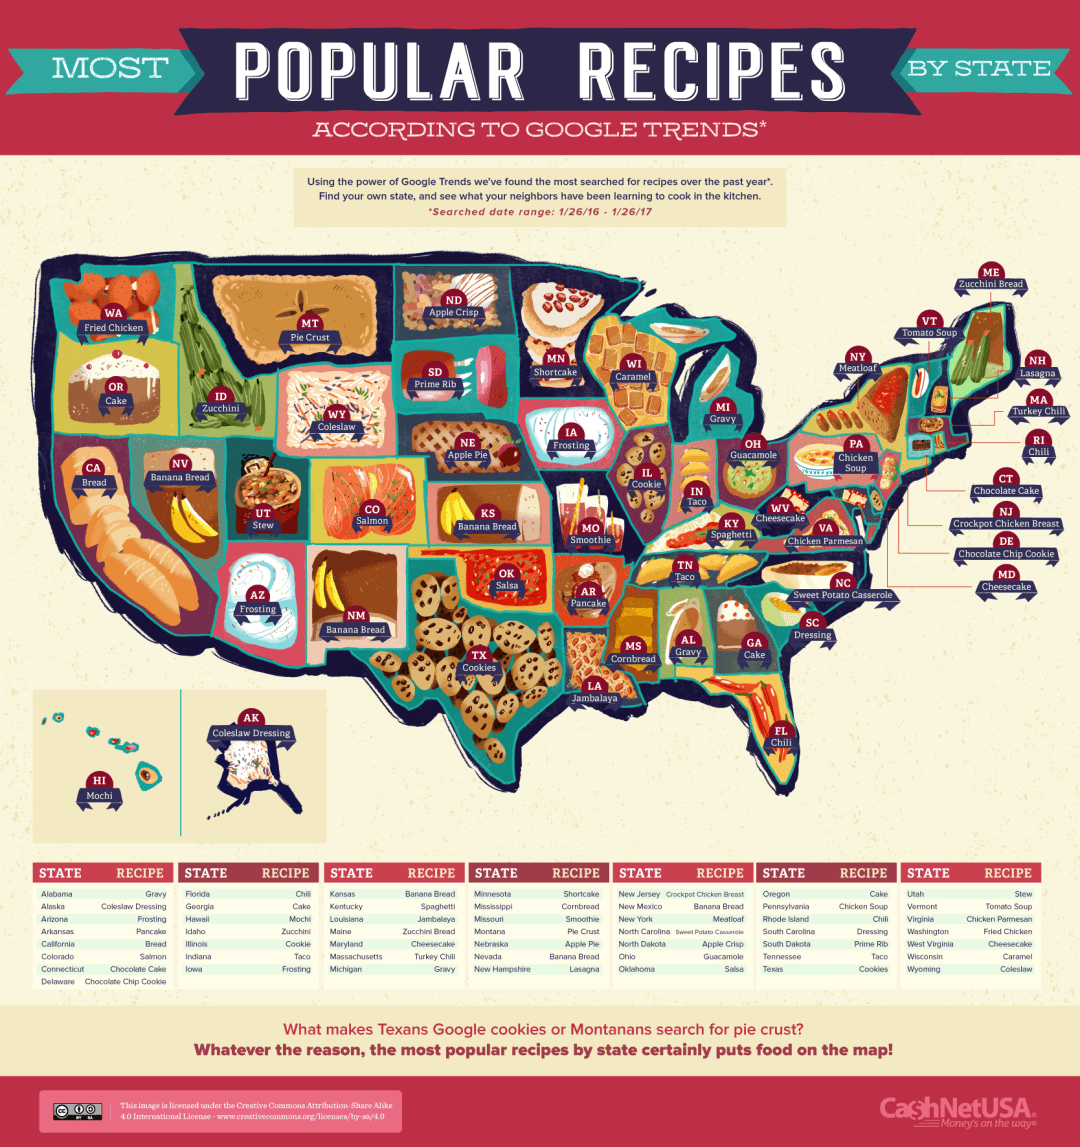 most popular recipes by state from Google Trends